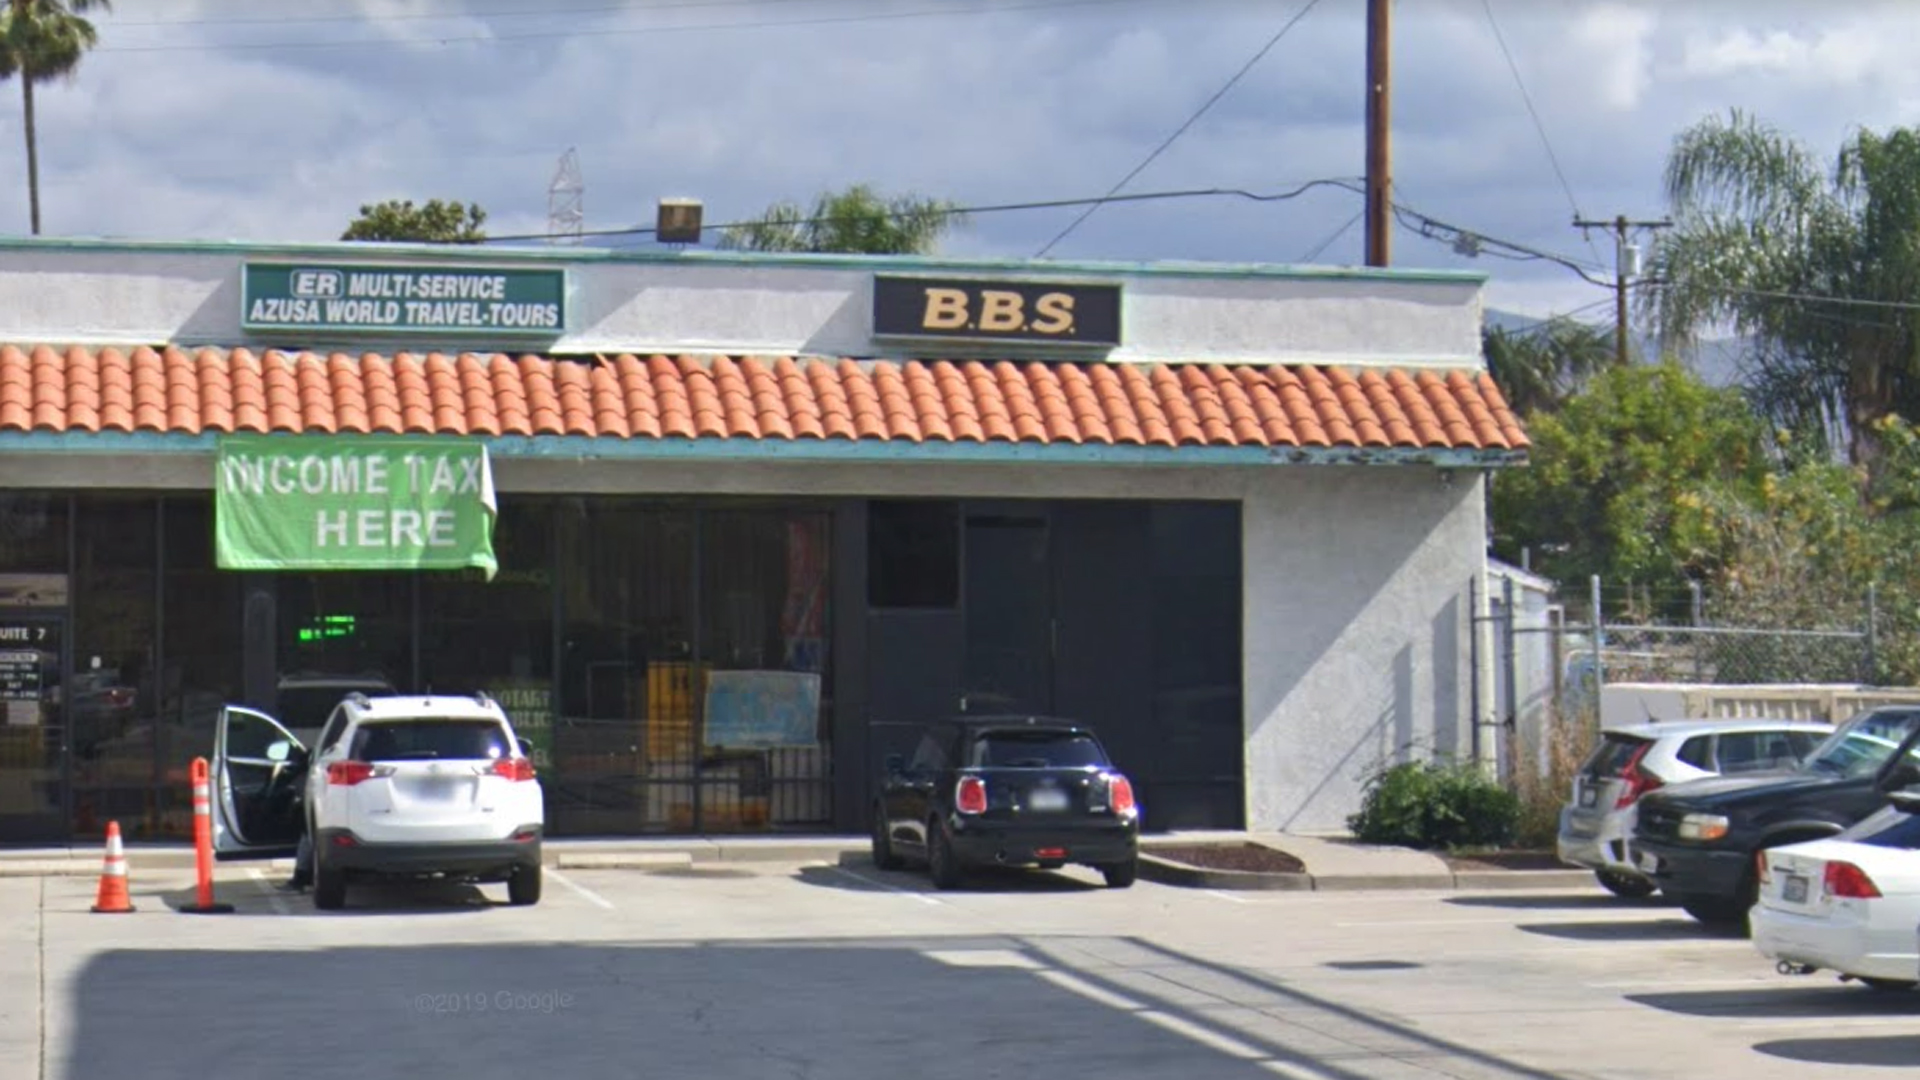 The B.B.S. marijuana dispensary, 16725 E. Arrow Highway in Azusa, as pictured in a Google Street View image in May of 2019.